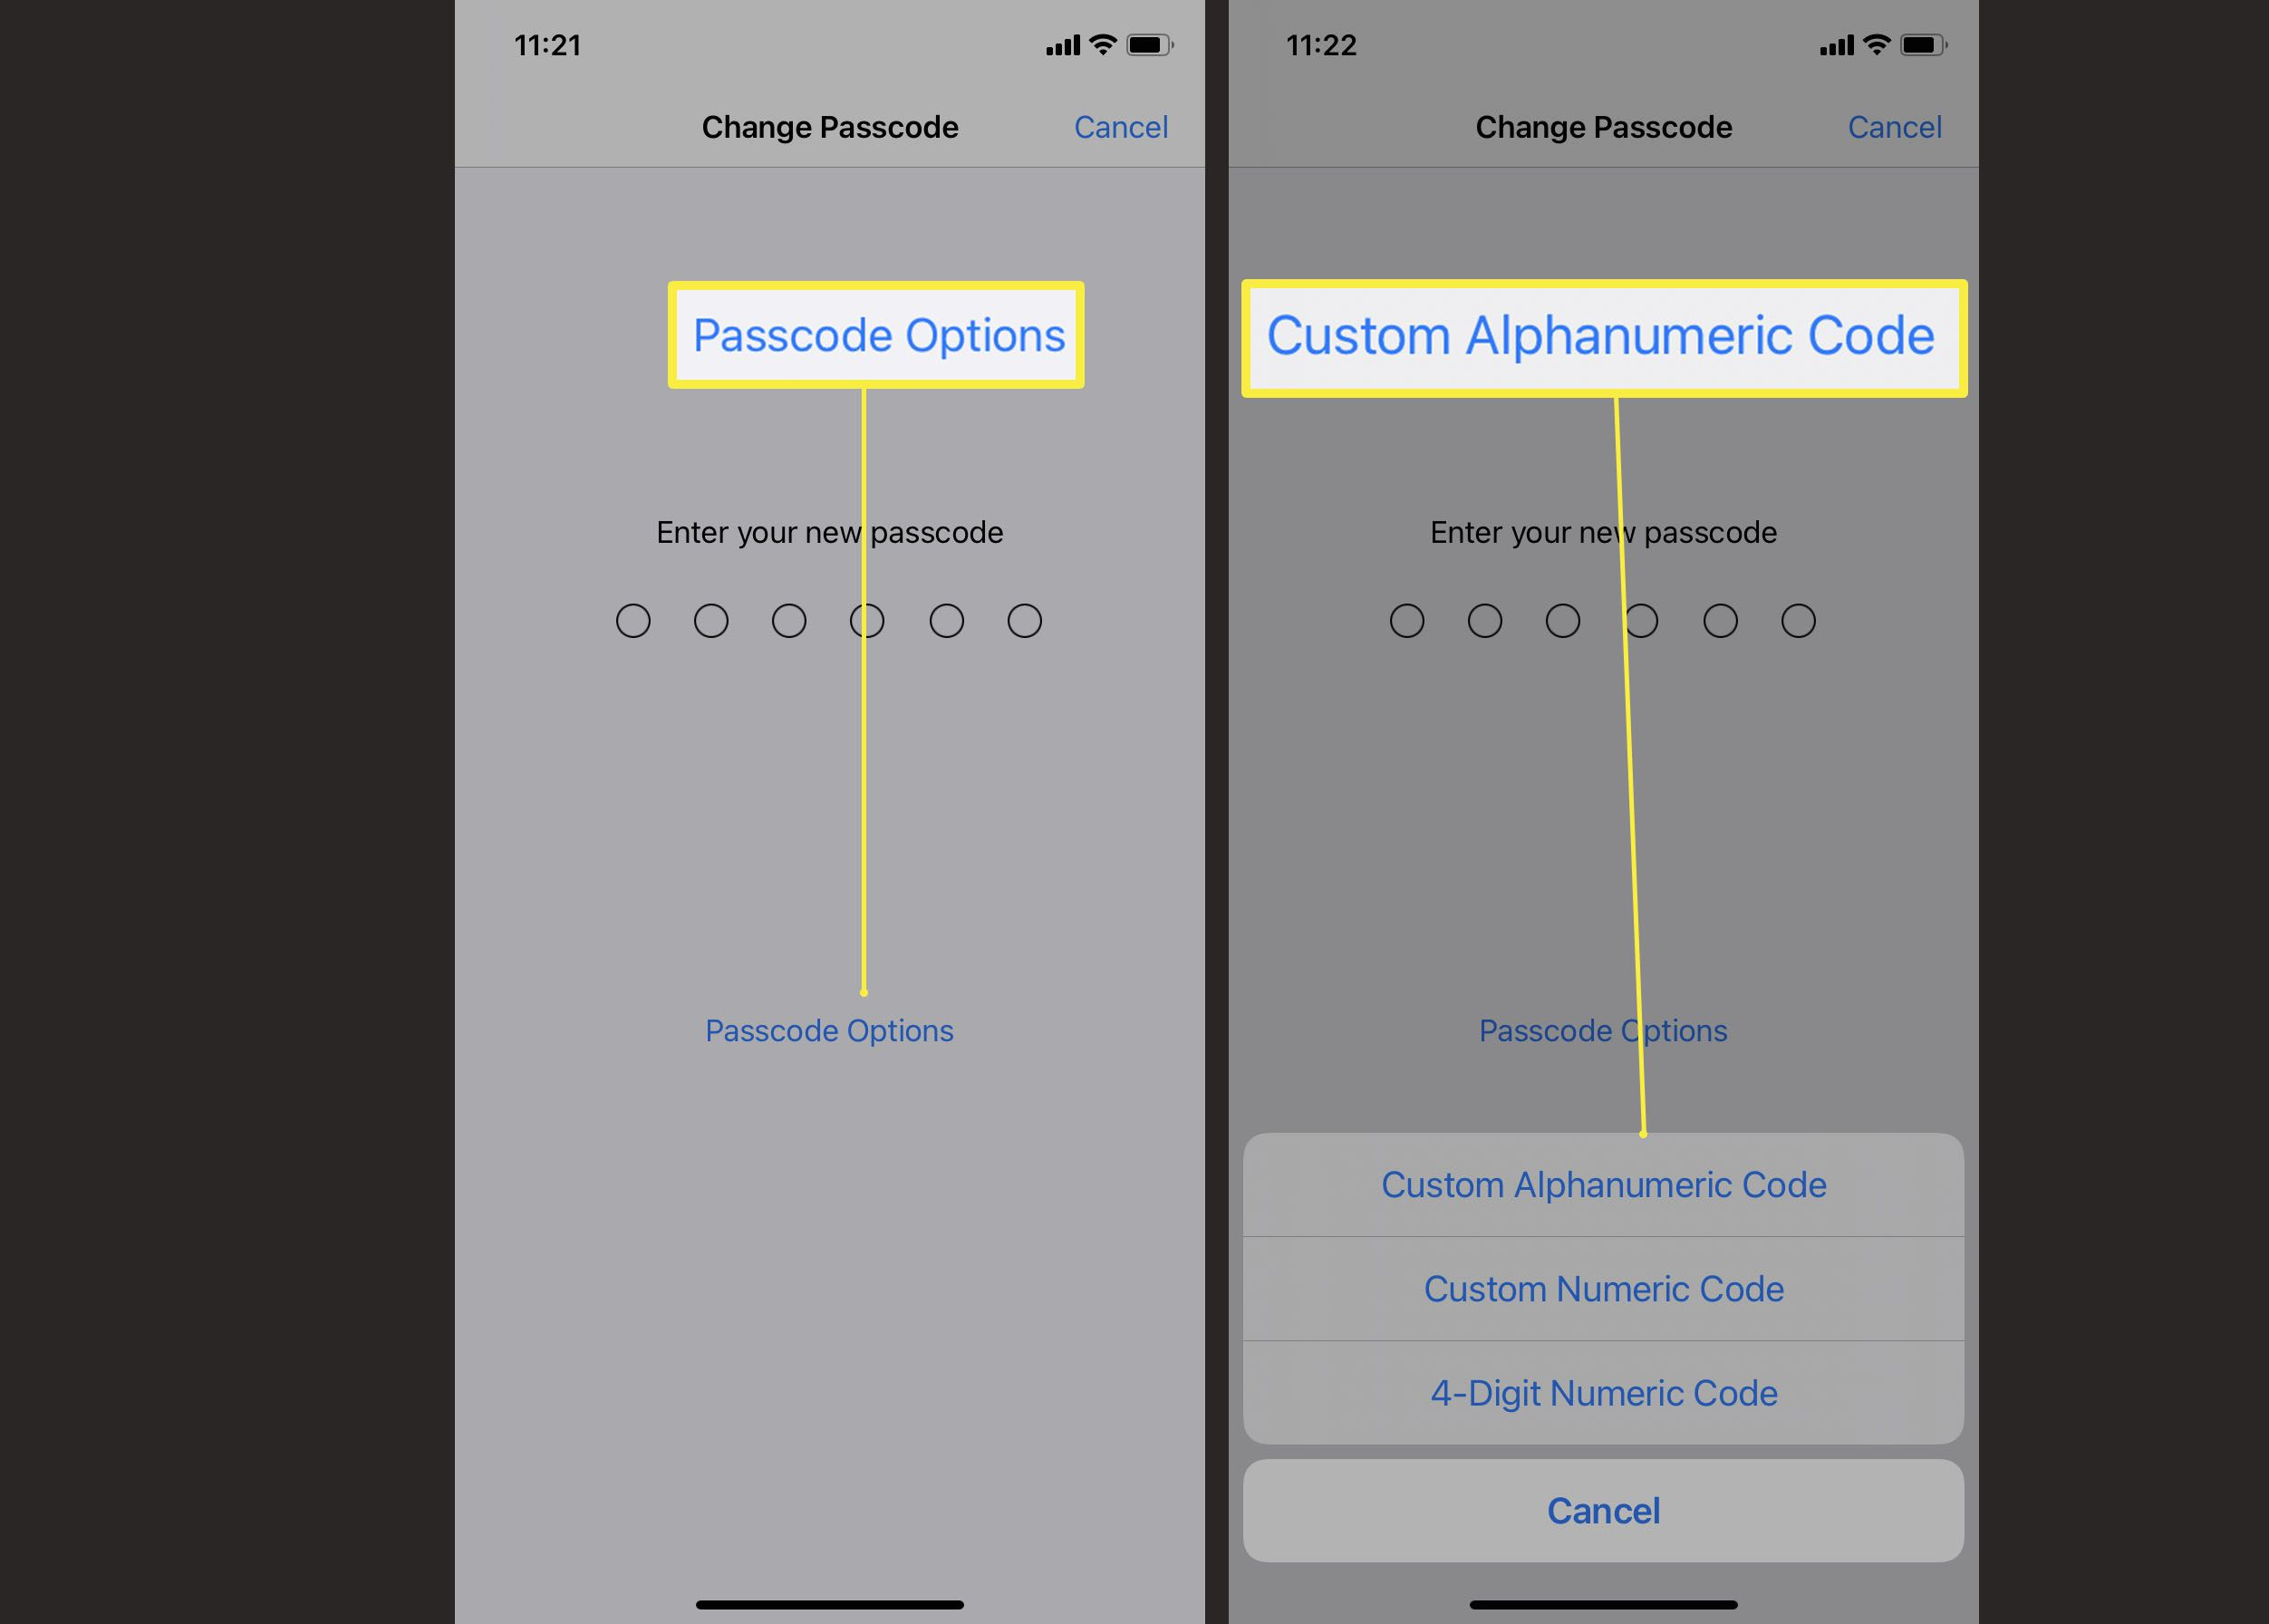 Steps required to change passcode on iPhone to custom alphanumeric code